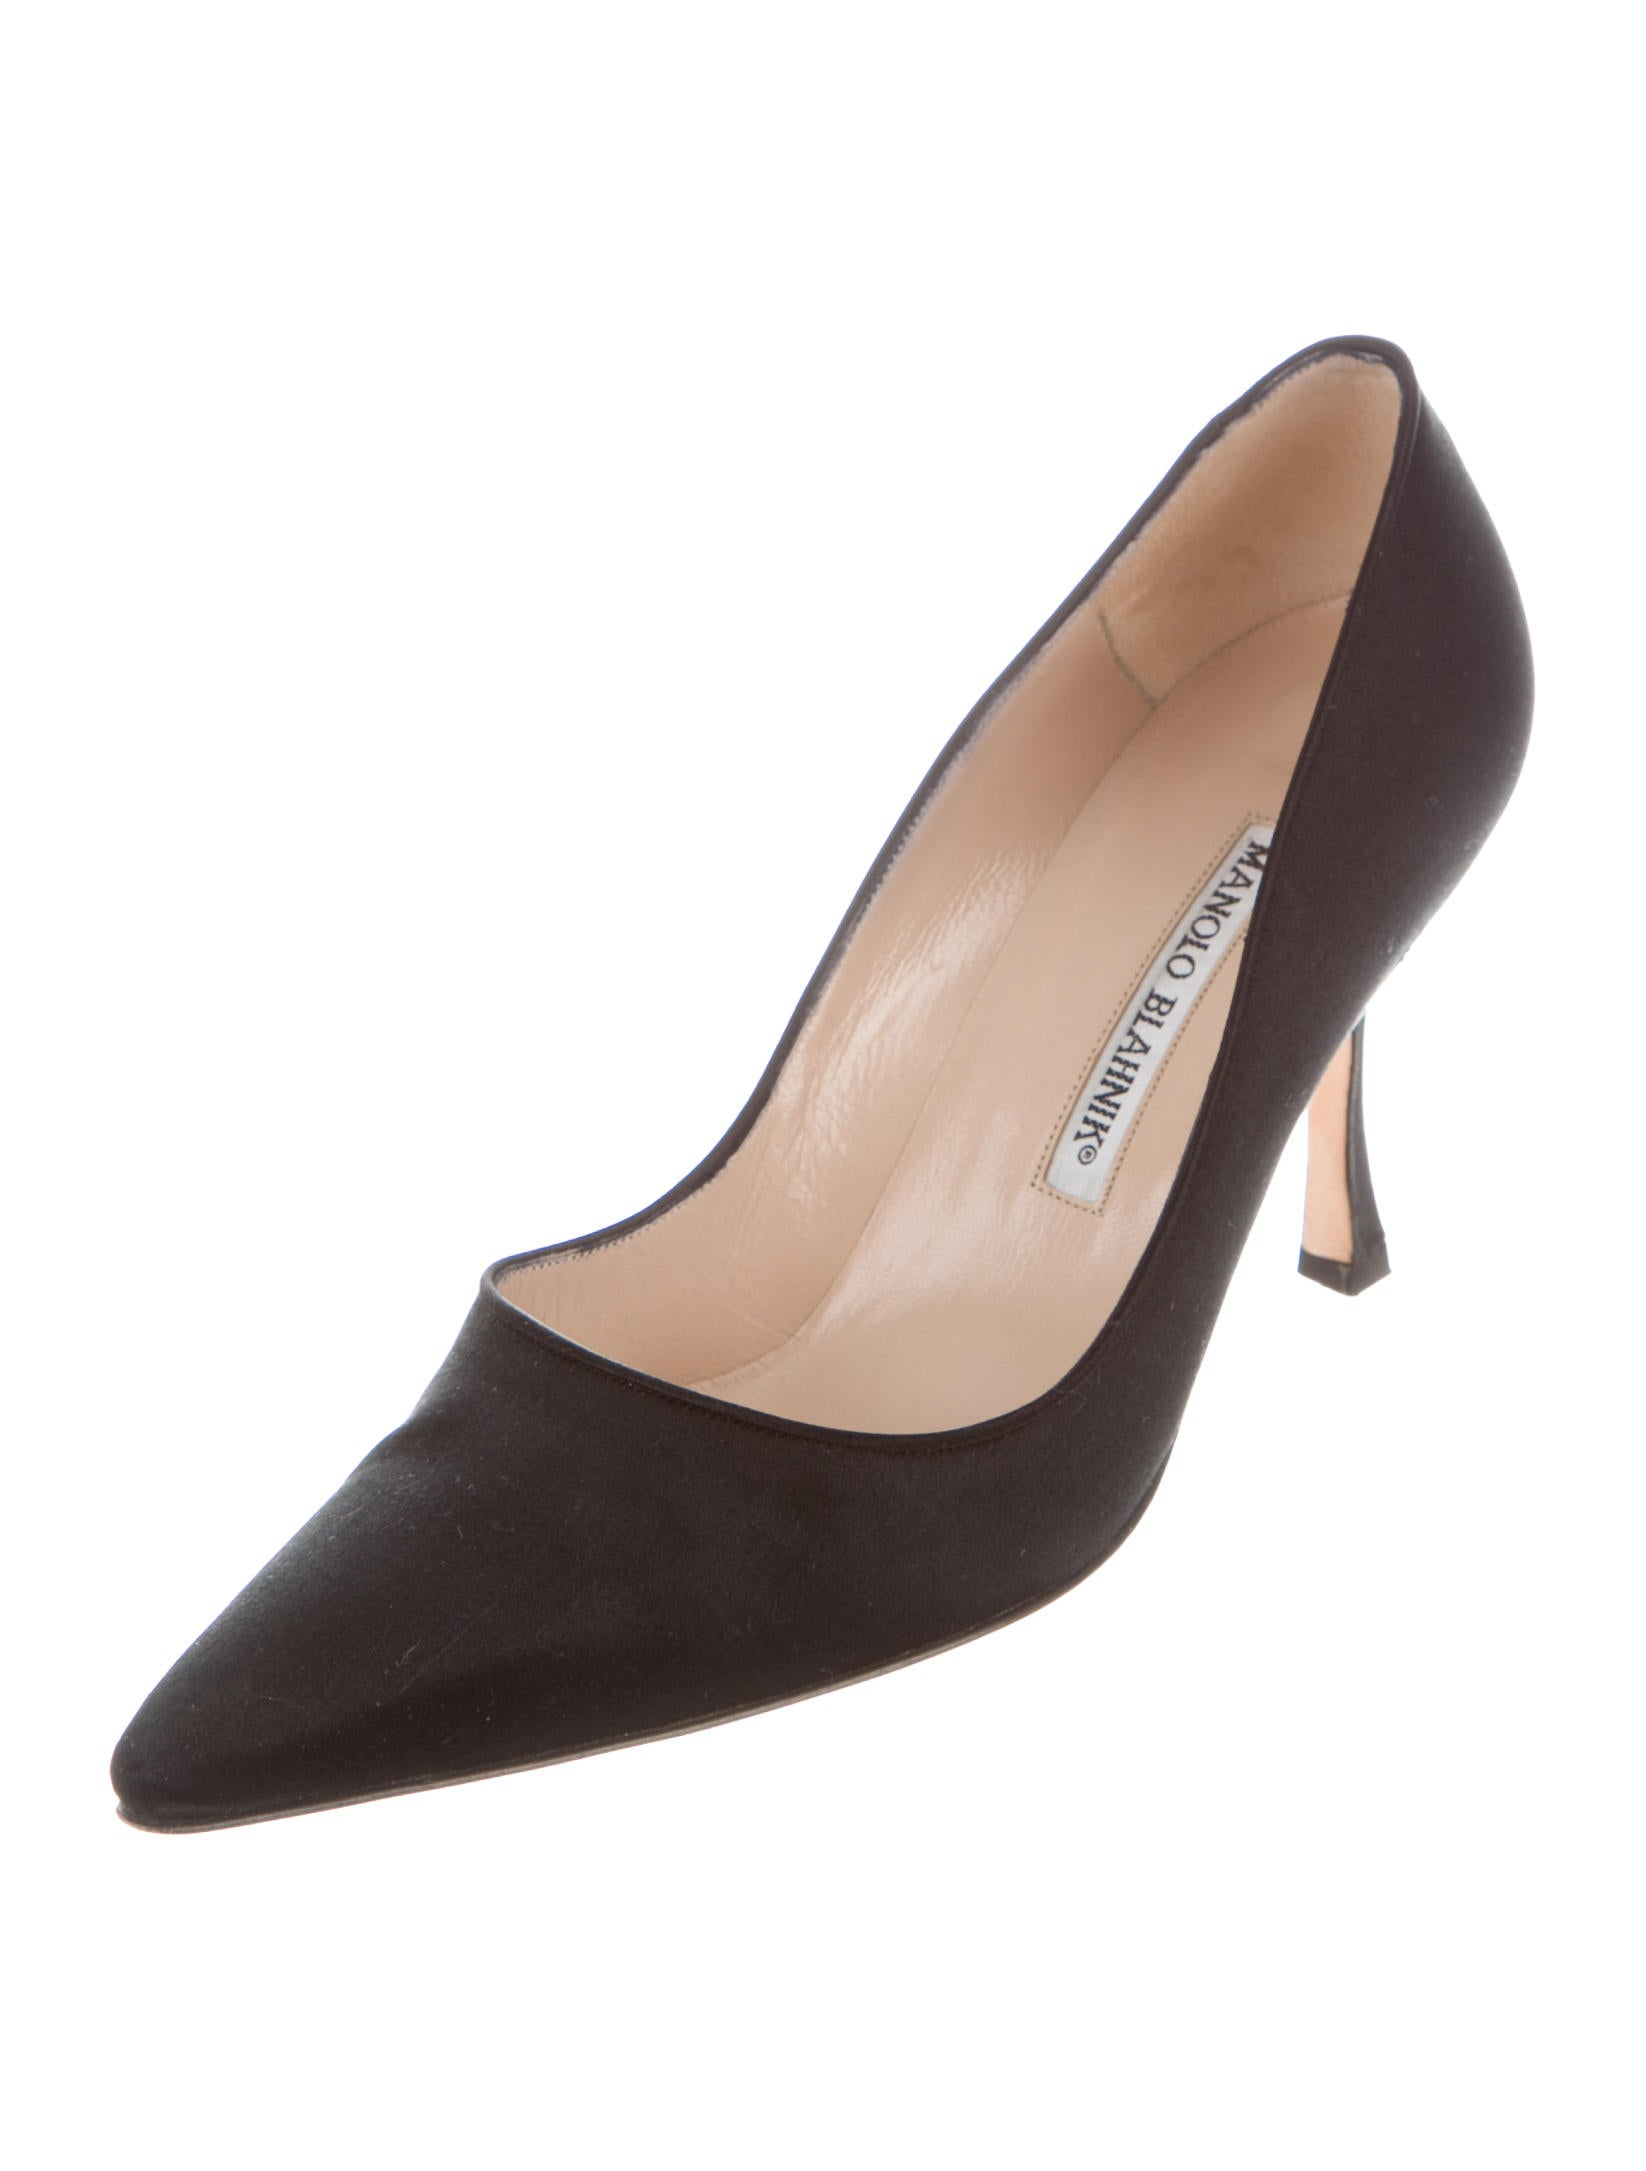 Manolo blahnik tuccio satin pumps shoes moo66356 the for Shoes by manolo blahnik